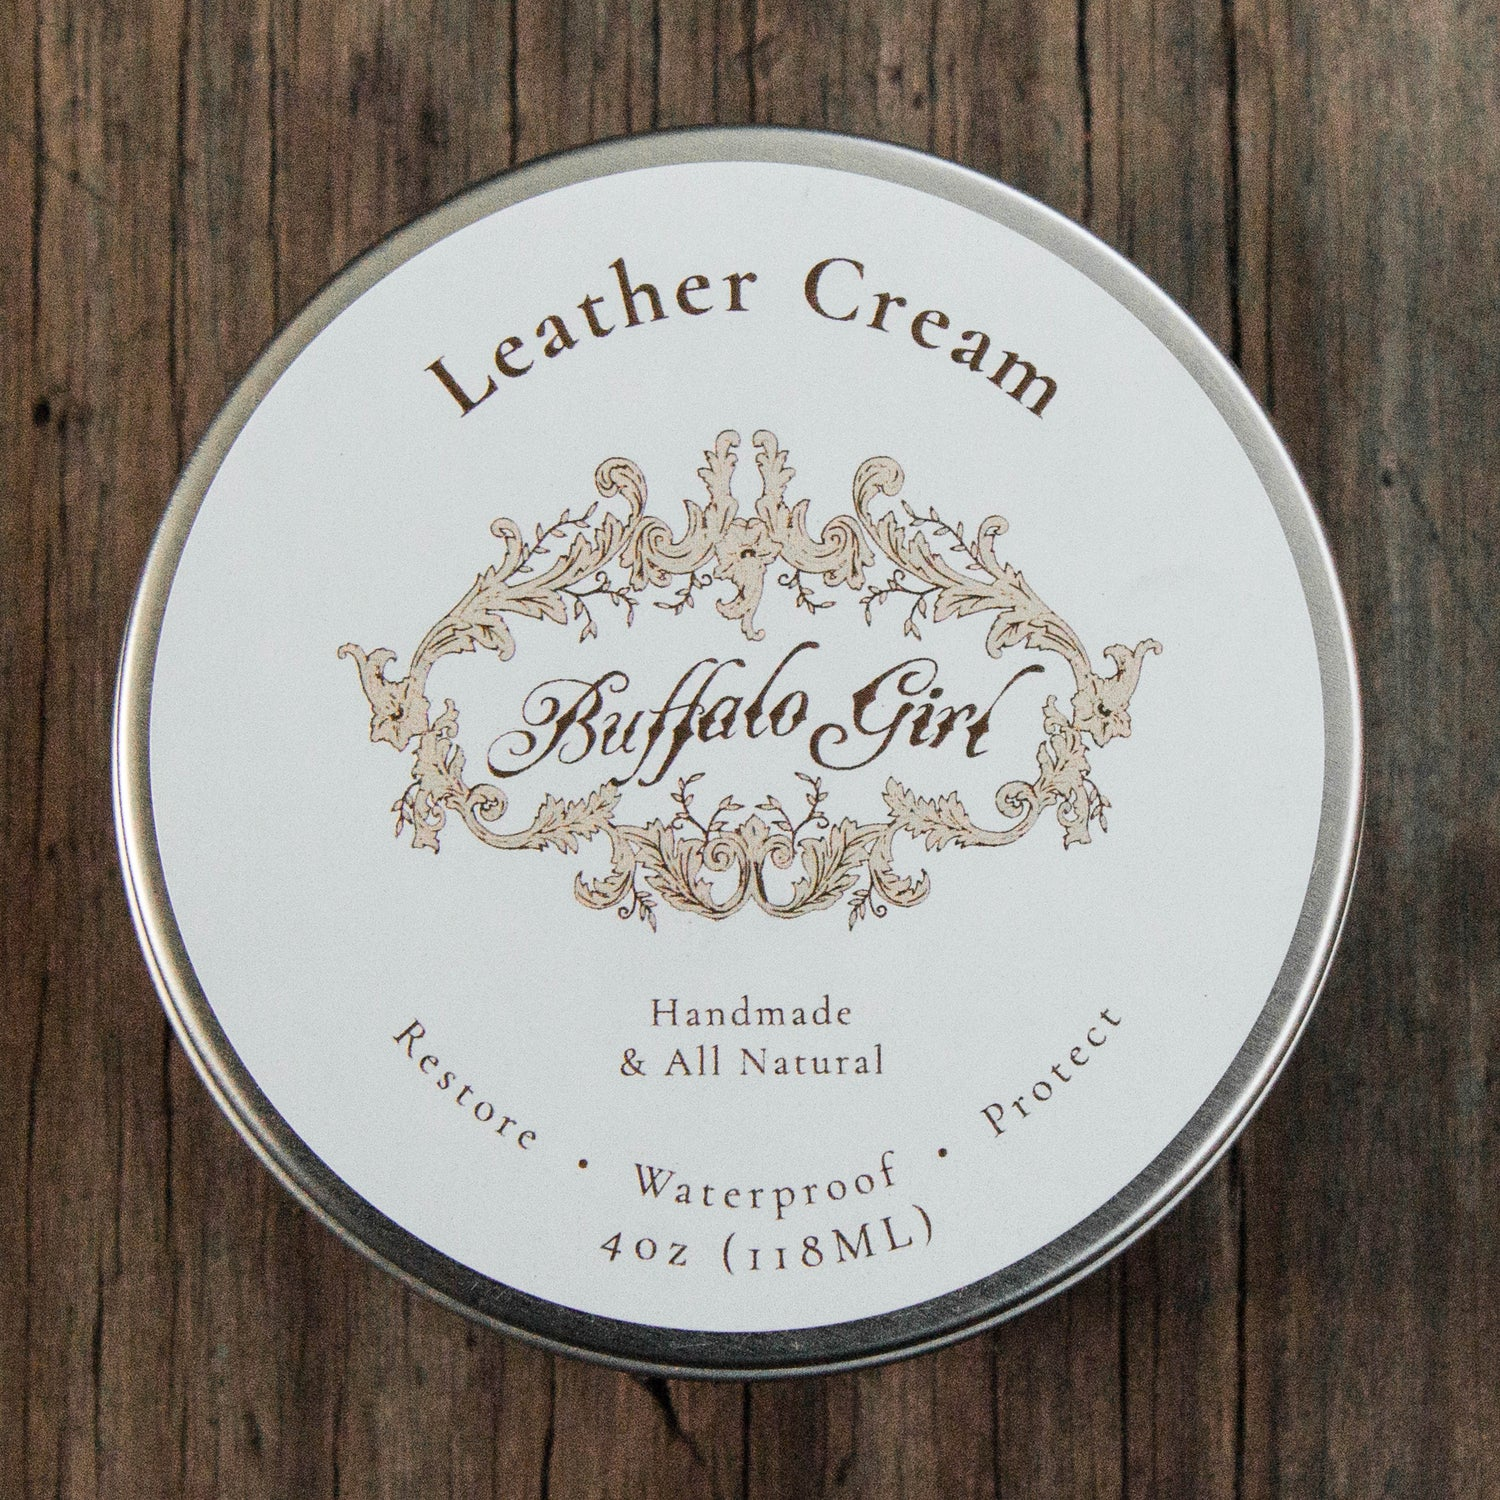 Buffalo Girl Leather Cream - Buffalo Girl